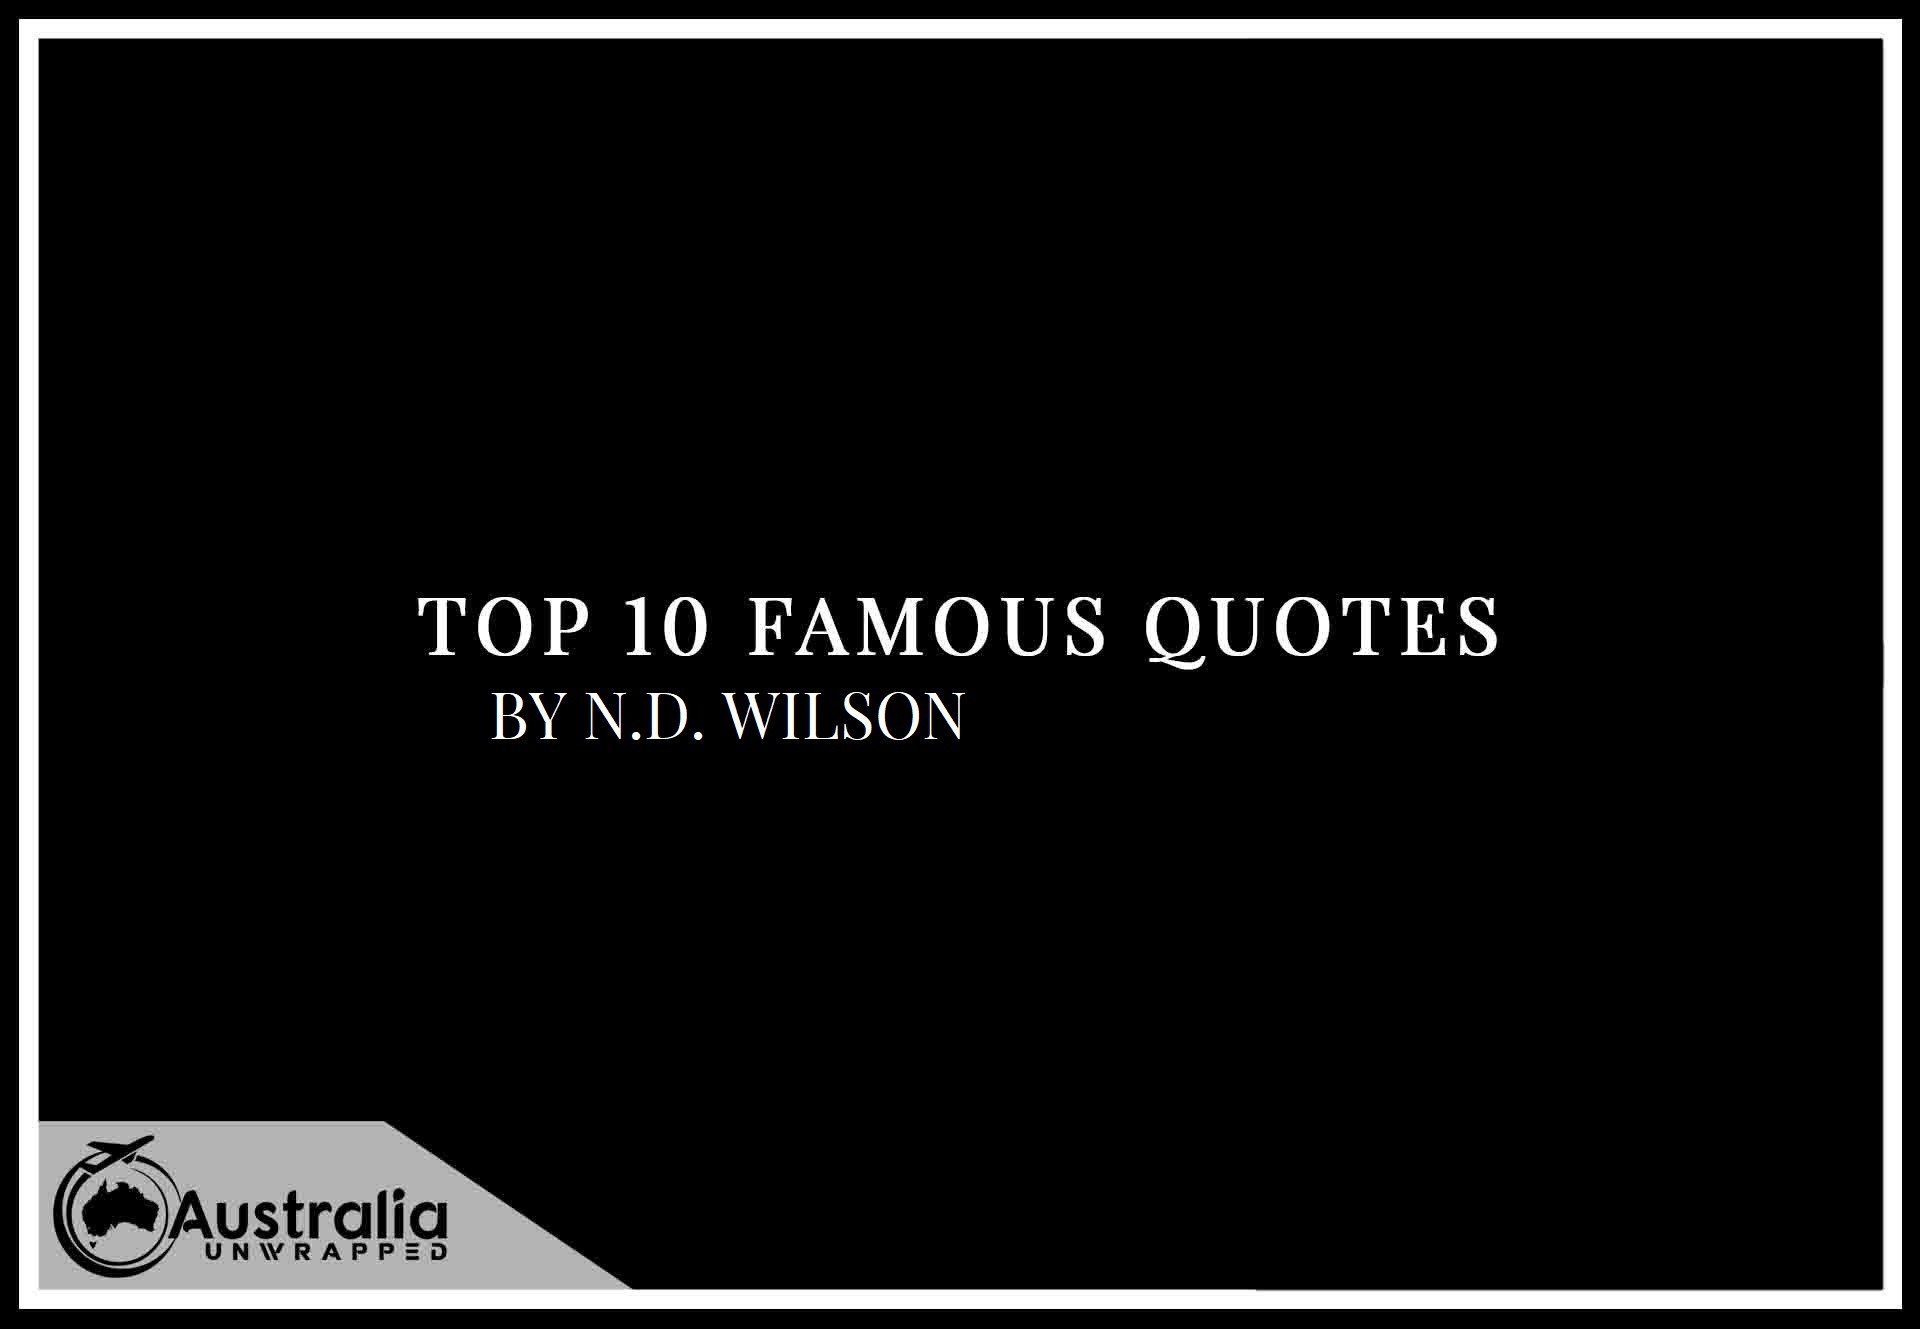 Top 10 Famous Quotes by Author N.D. Wilson